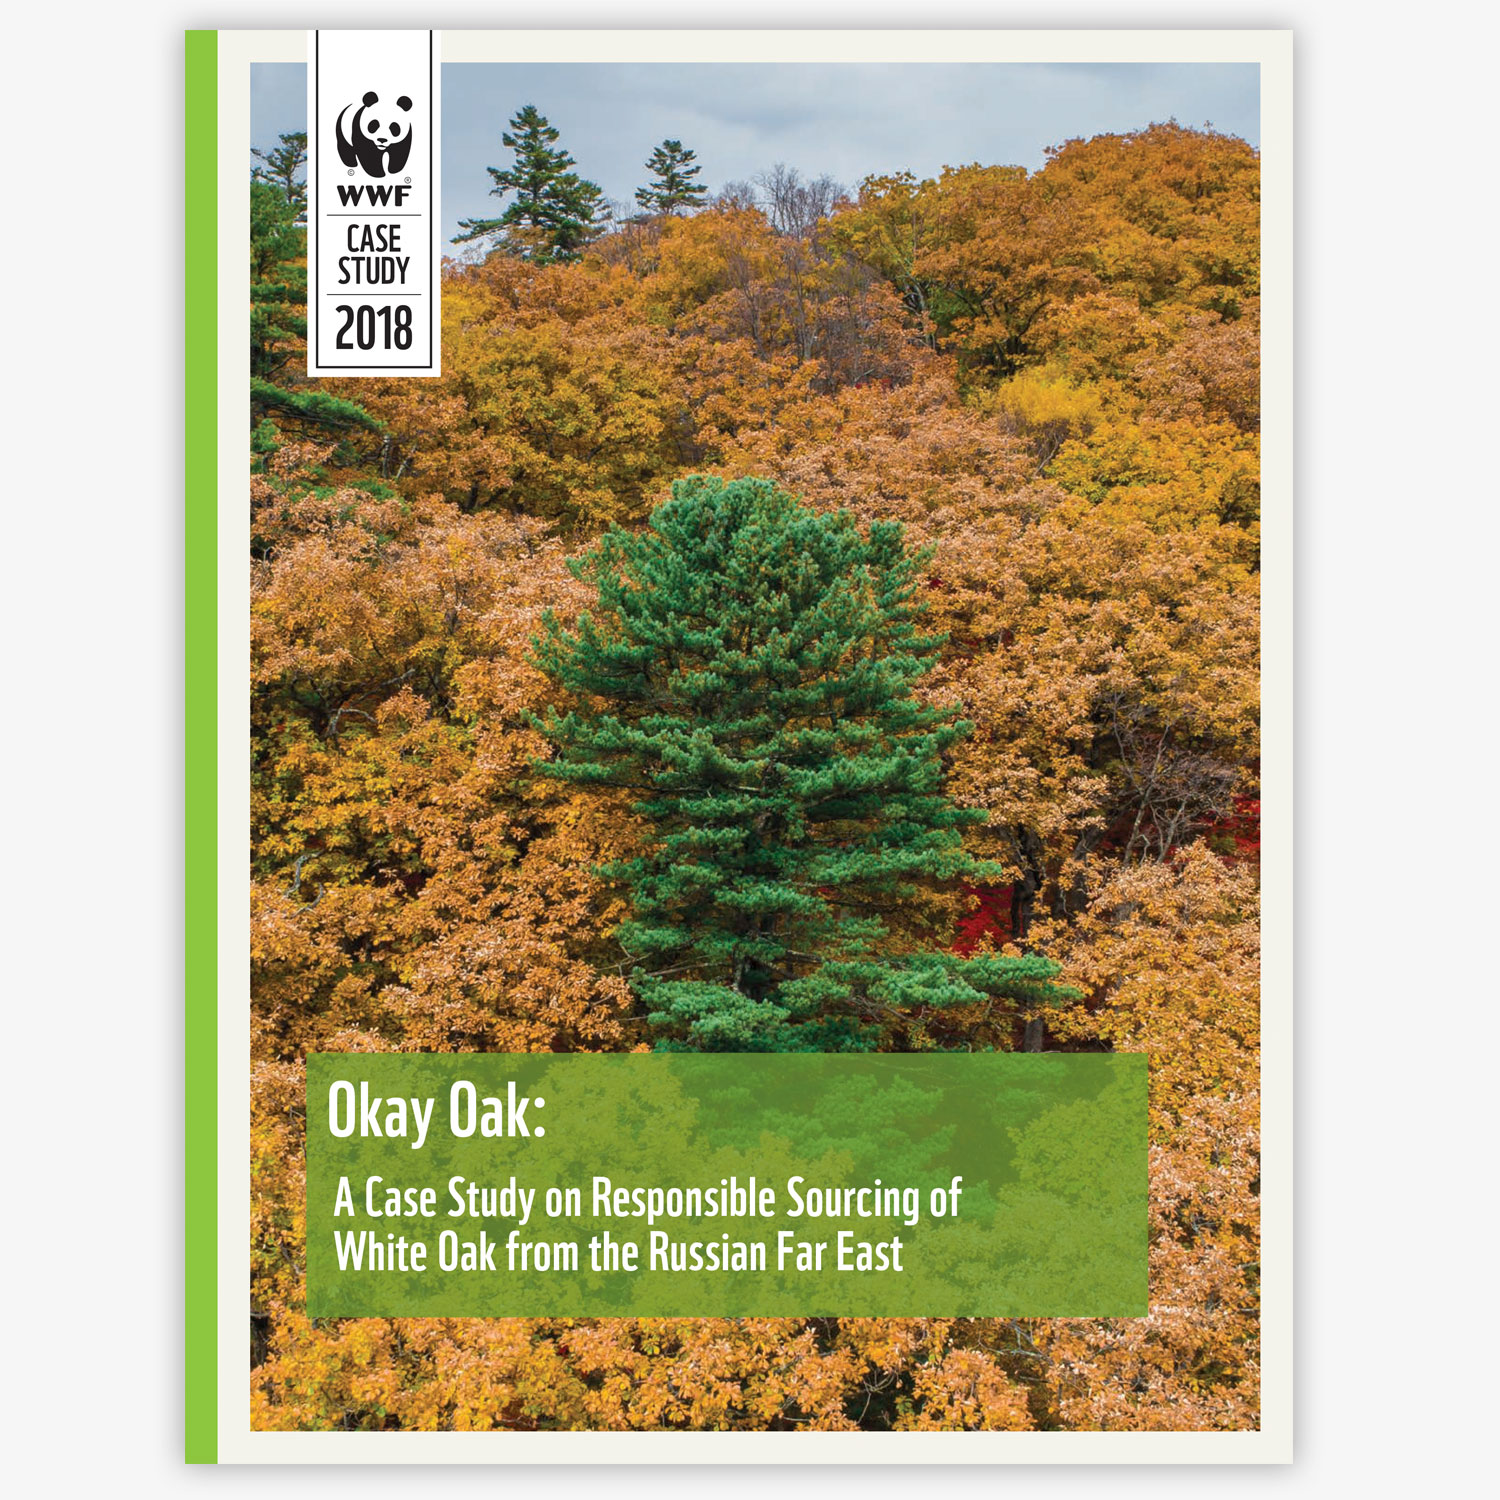 Case Study –  Okay, Oak: A Case Study on Responsible Sourcing of White Oak from the Russian Far East